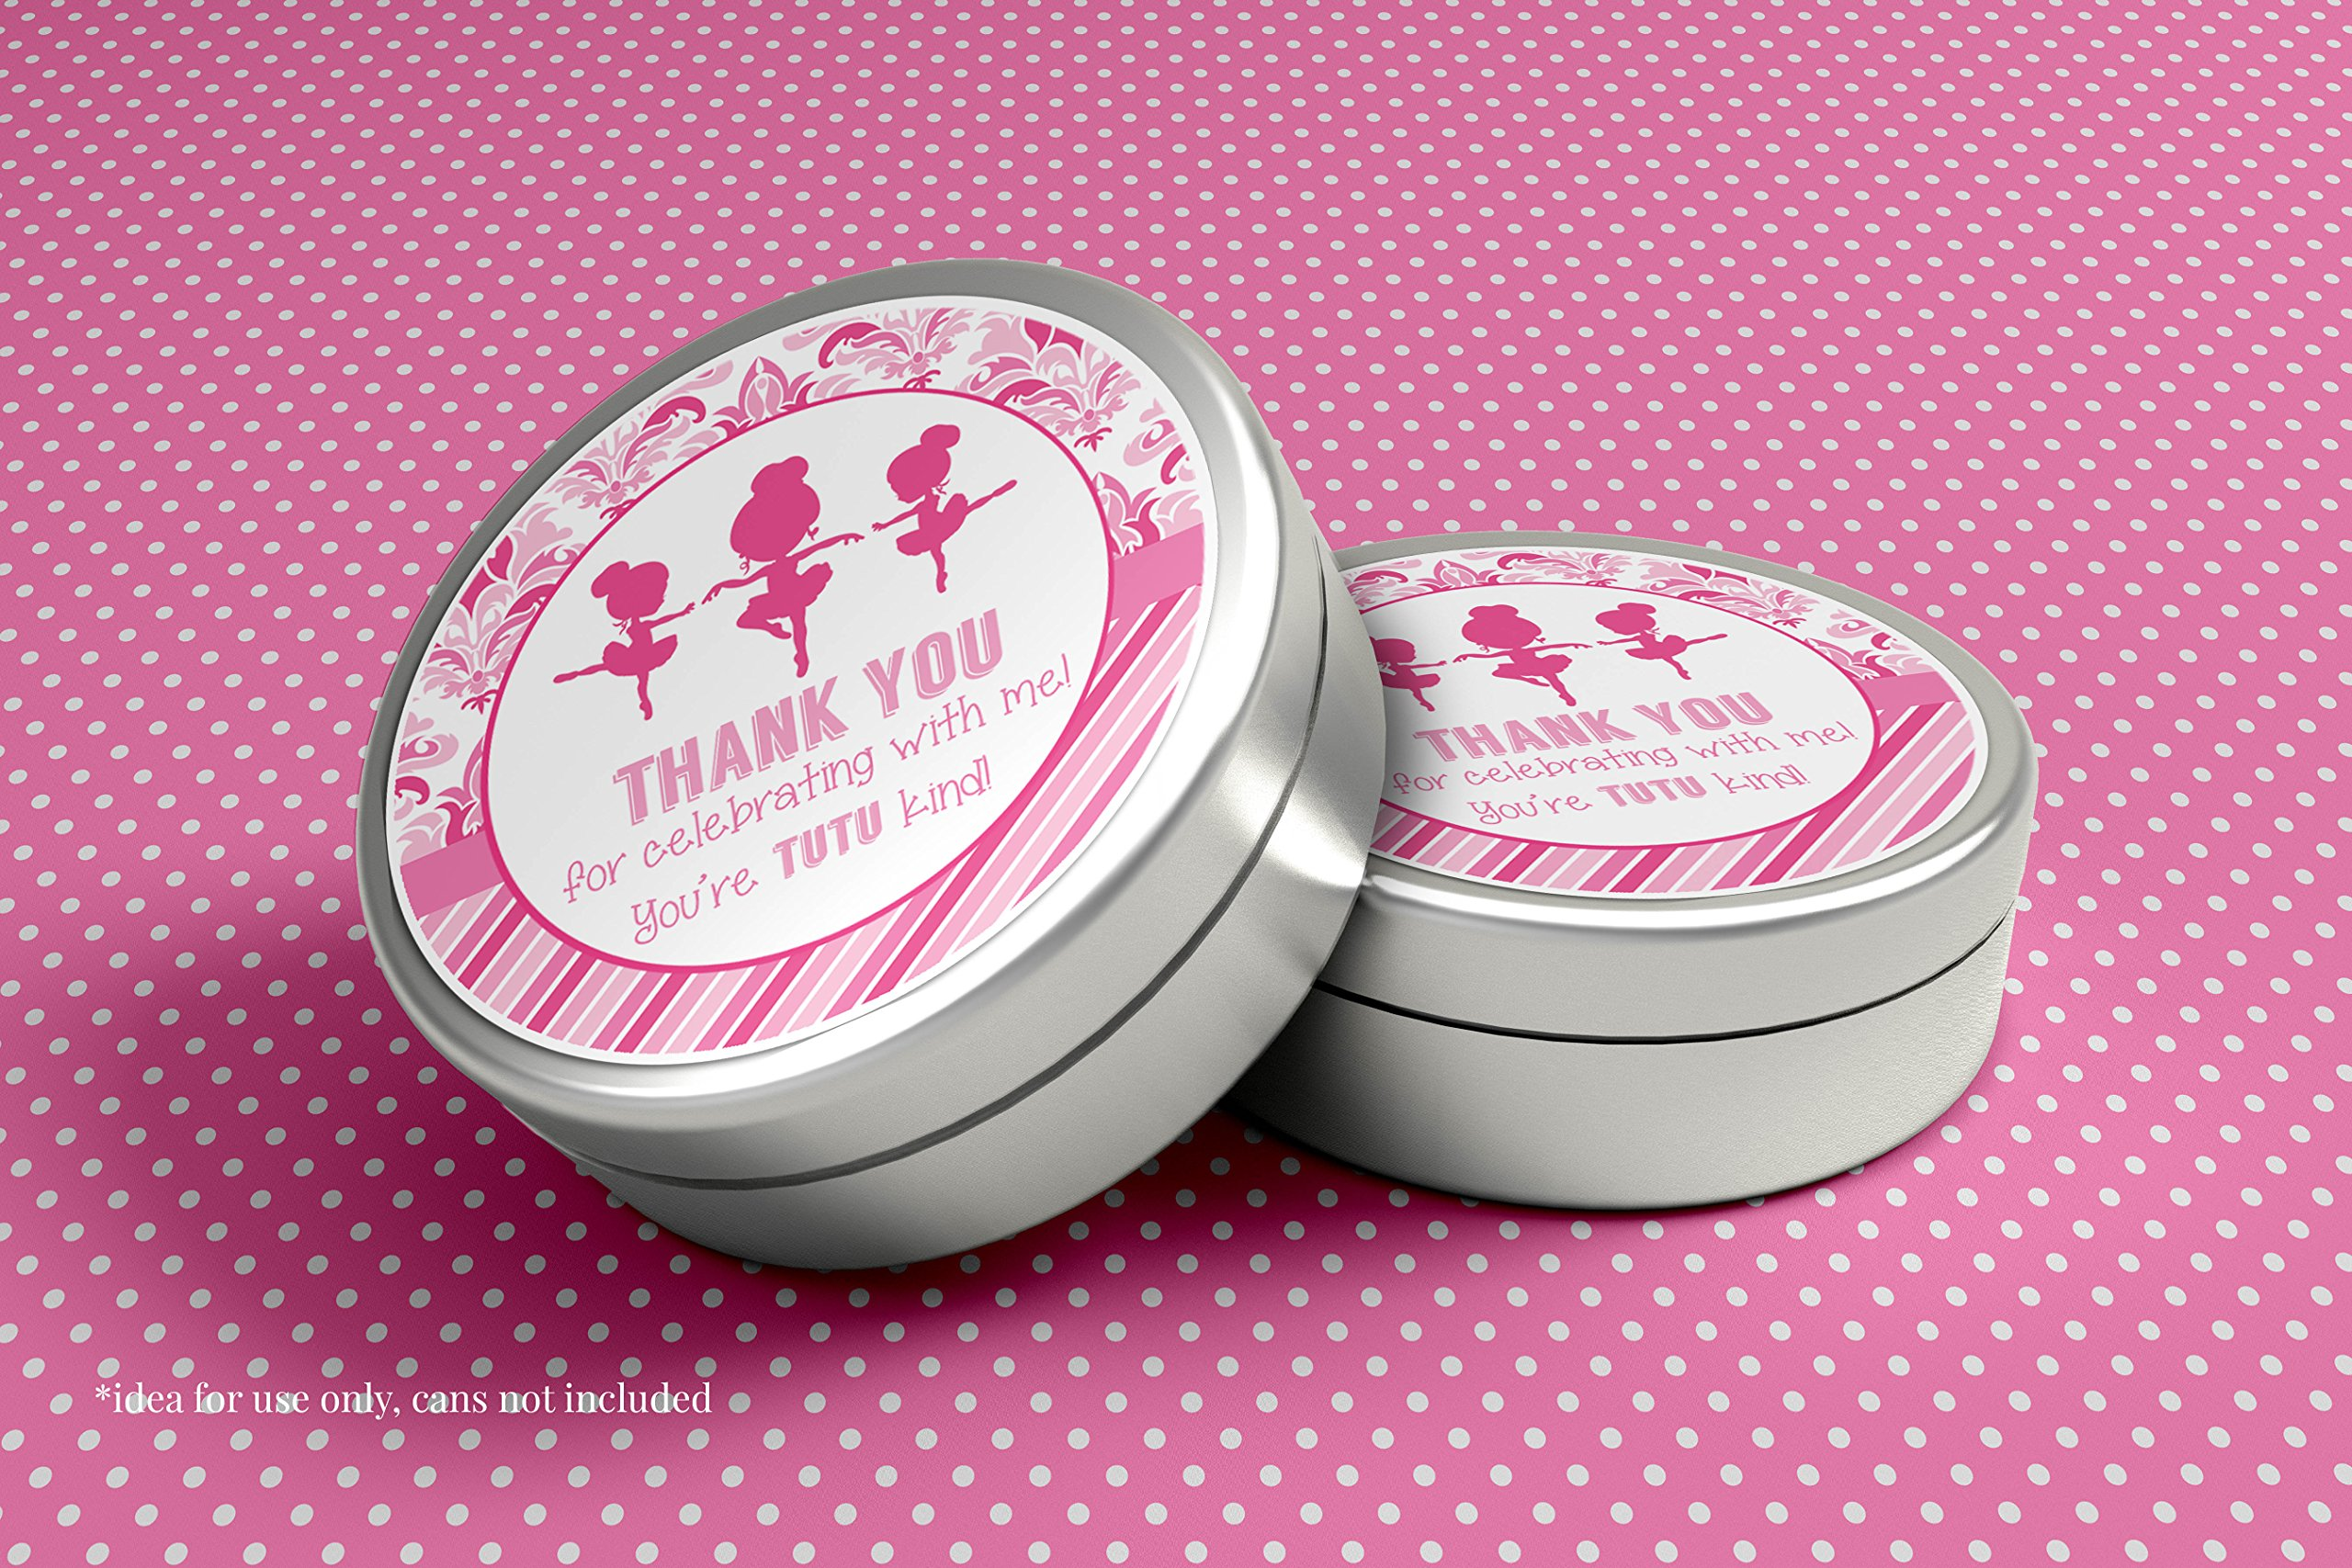 Dance & Twirl Pink Ballerina Thank You Birthday Party Sticker Labels, 20 2'' Party Circle Stickers by AmandaCreation, Great for Party Favors, Envelope Seals & Goodie Bags by Amanda Creation (Image #3)